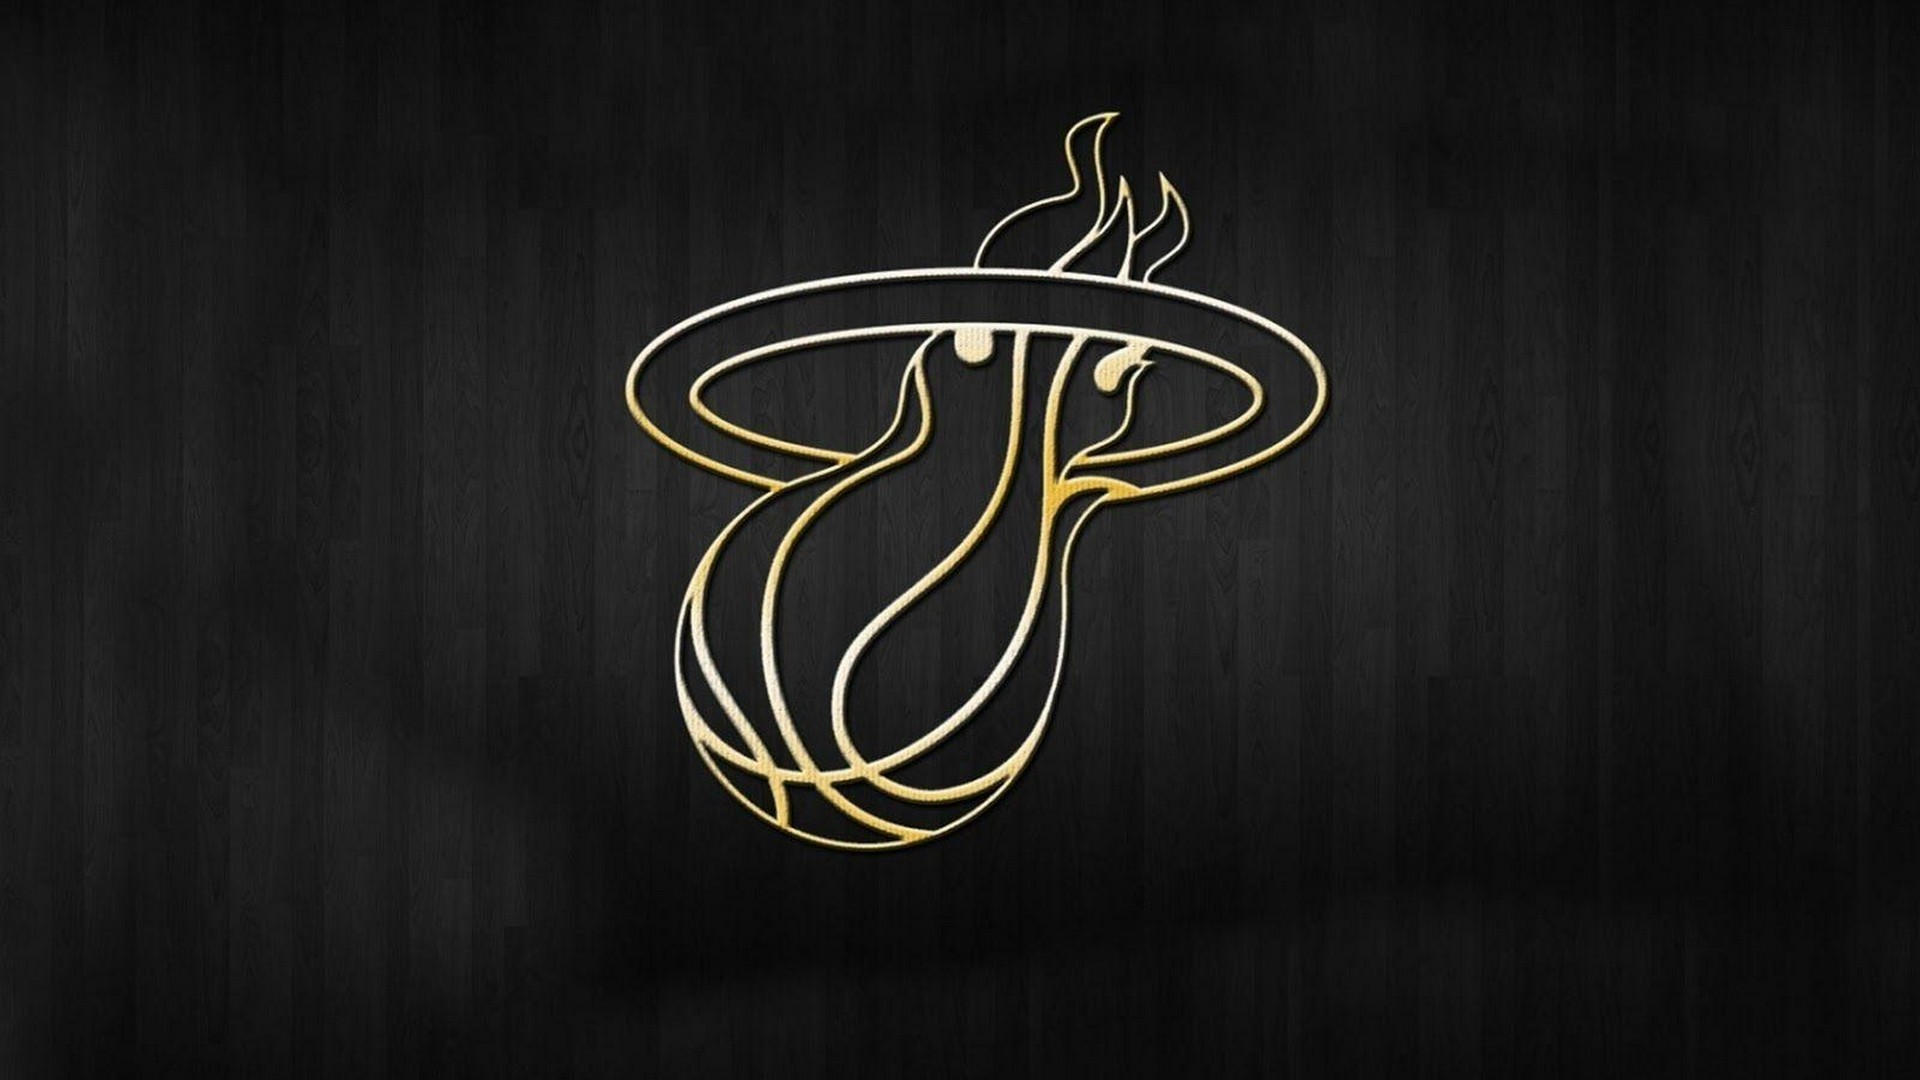 1920x1080 Miami Heat For Mac Wallpaper with high-resolution  pixel. You can  use this